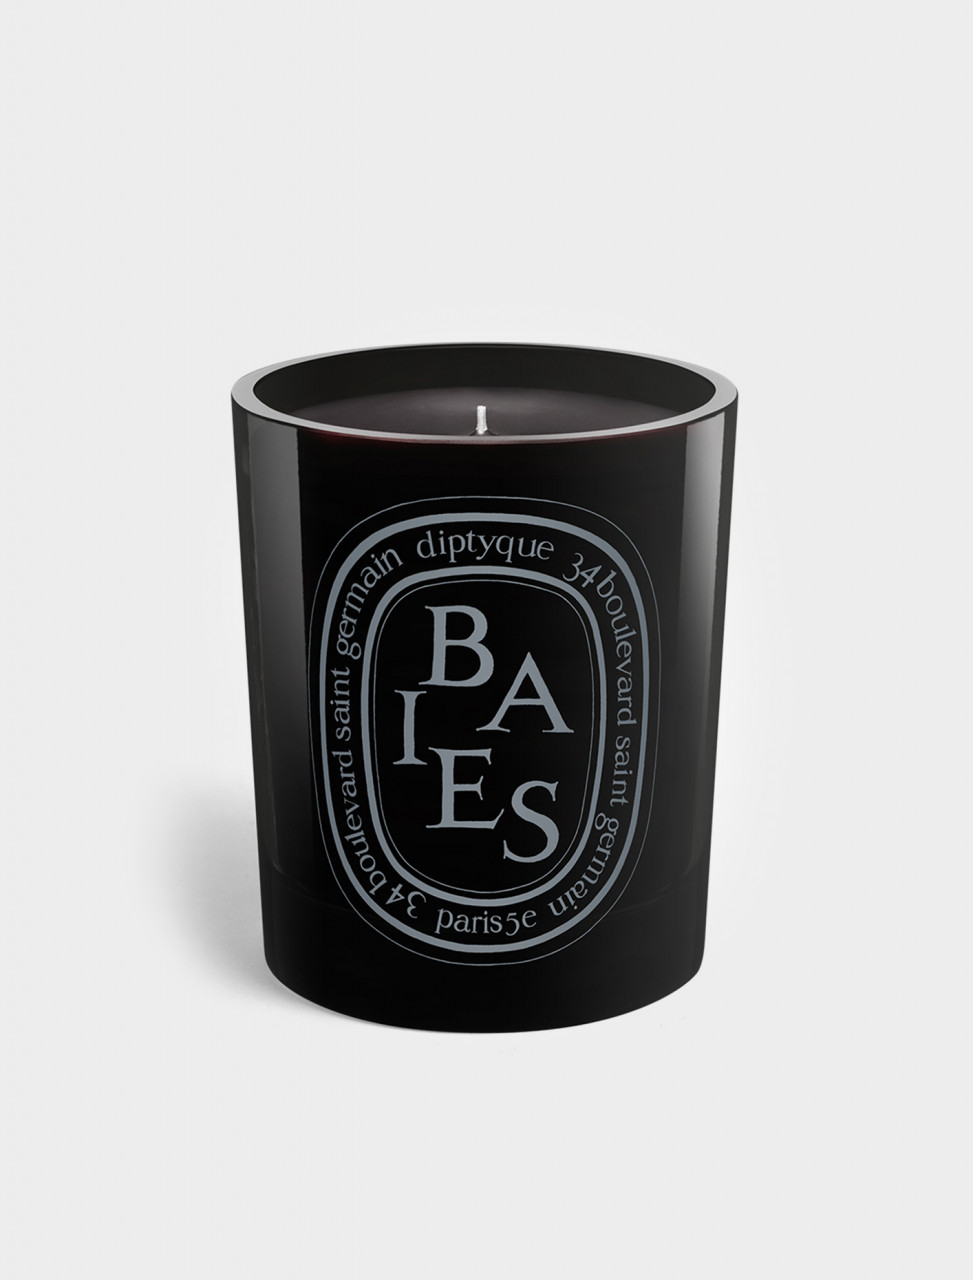 337-BN2 DIPTYQUE BAIES BLACK CANDLE